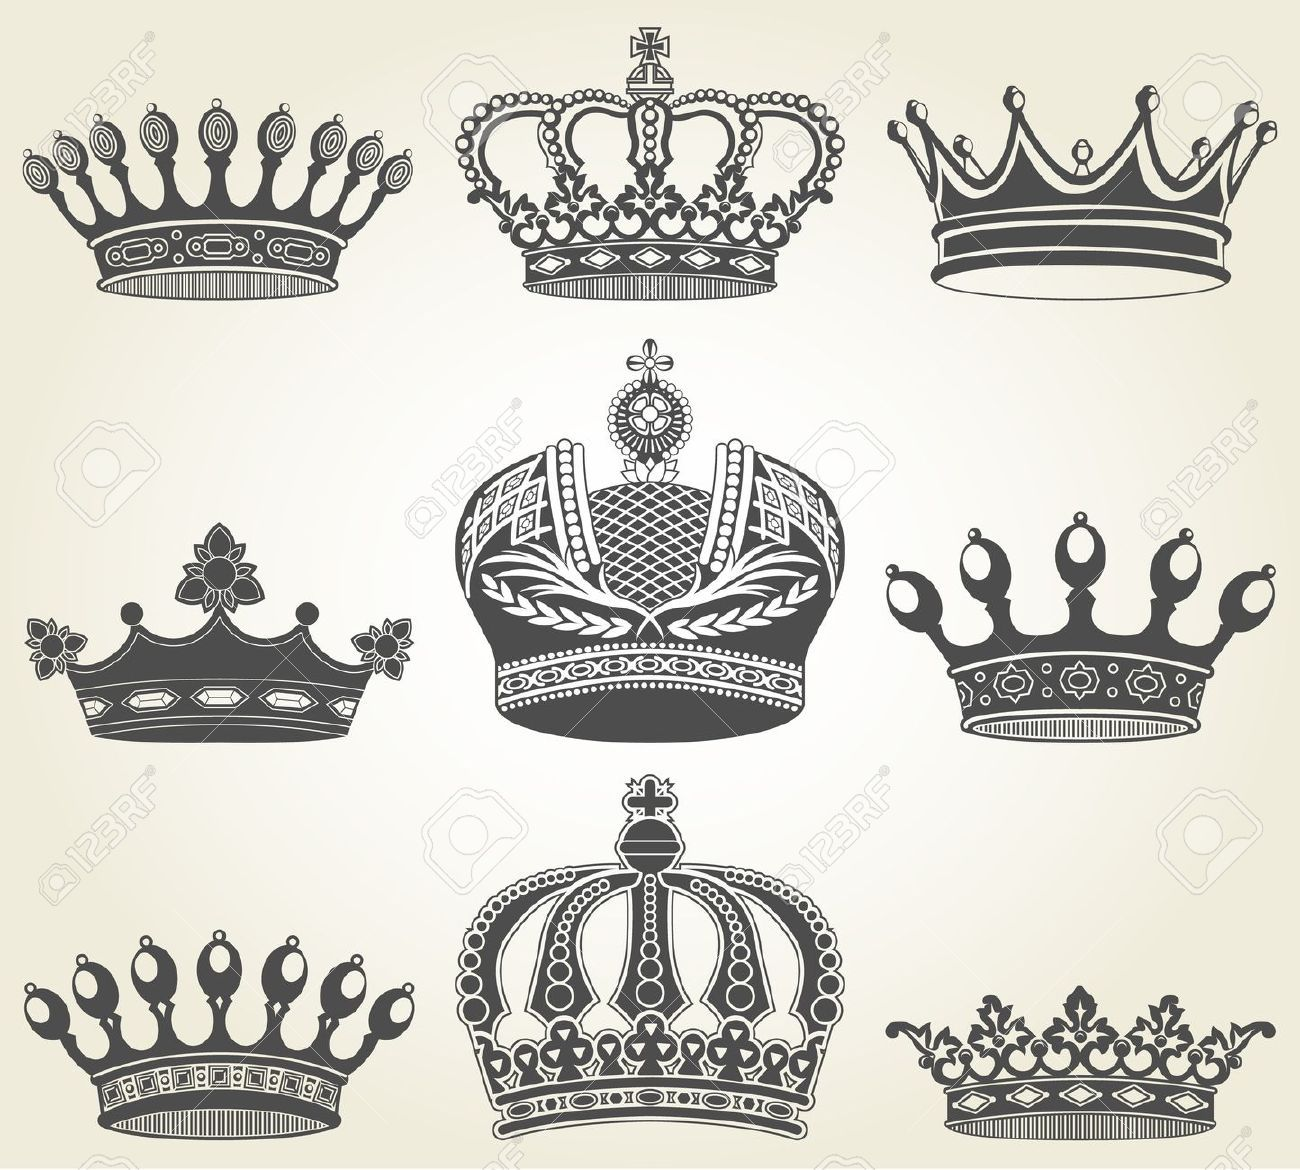 Tattoo Designs Crown: Crown Tattoo Designs Delicate - Google Search